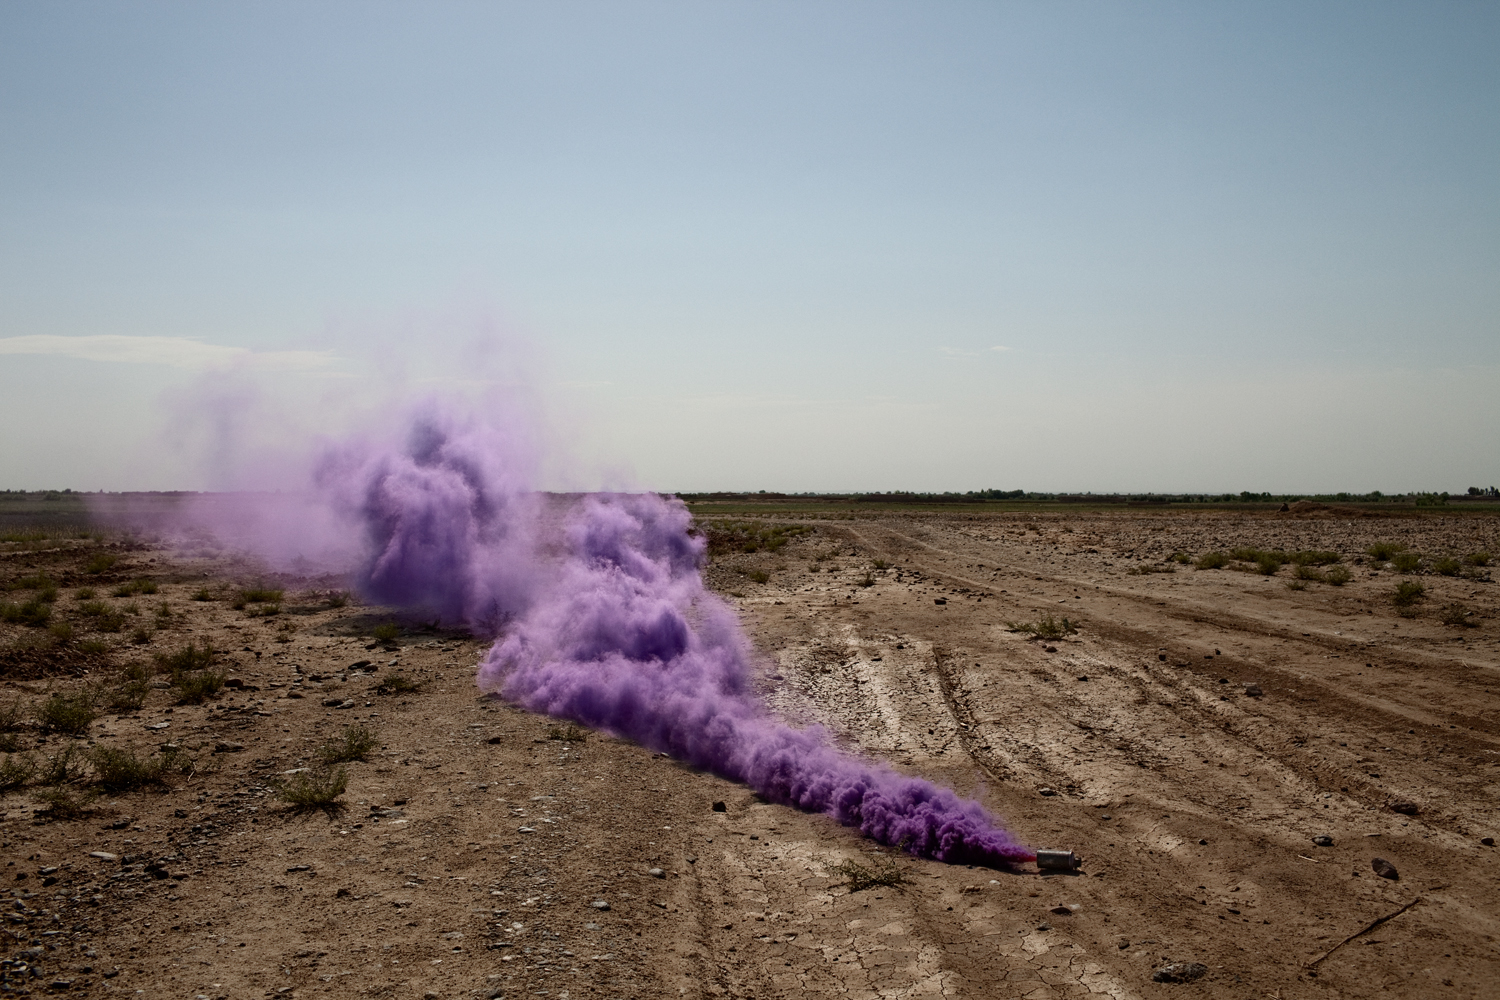 A U.S. Marine flare marks a landing zone for a medical evacuation helicopter near Patrol Base Beatley in Marja District, Helmand Province, Afghanistan.